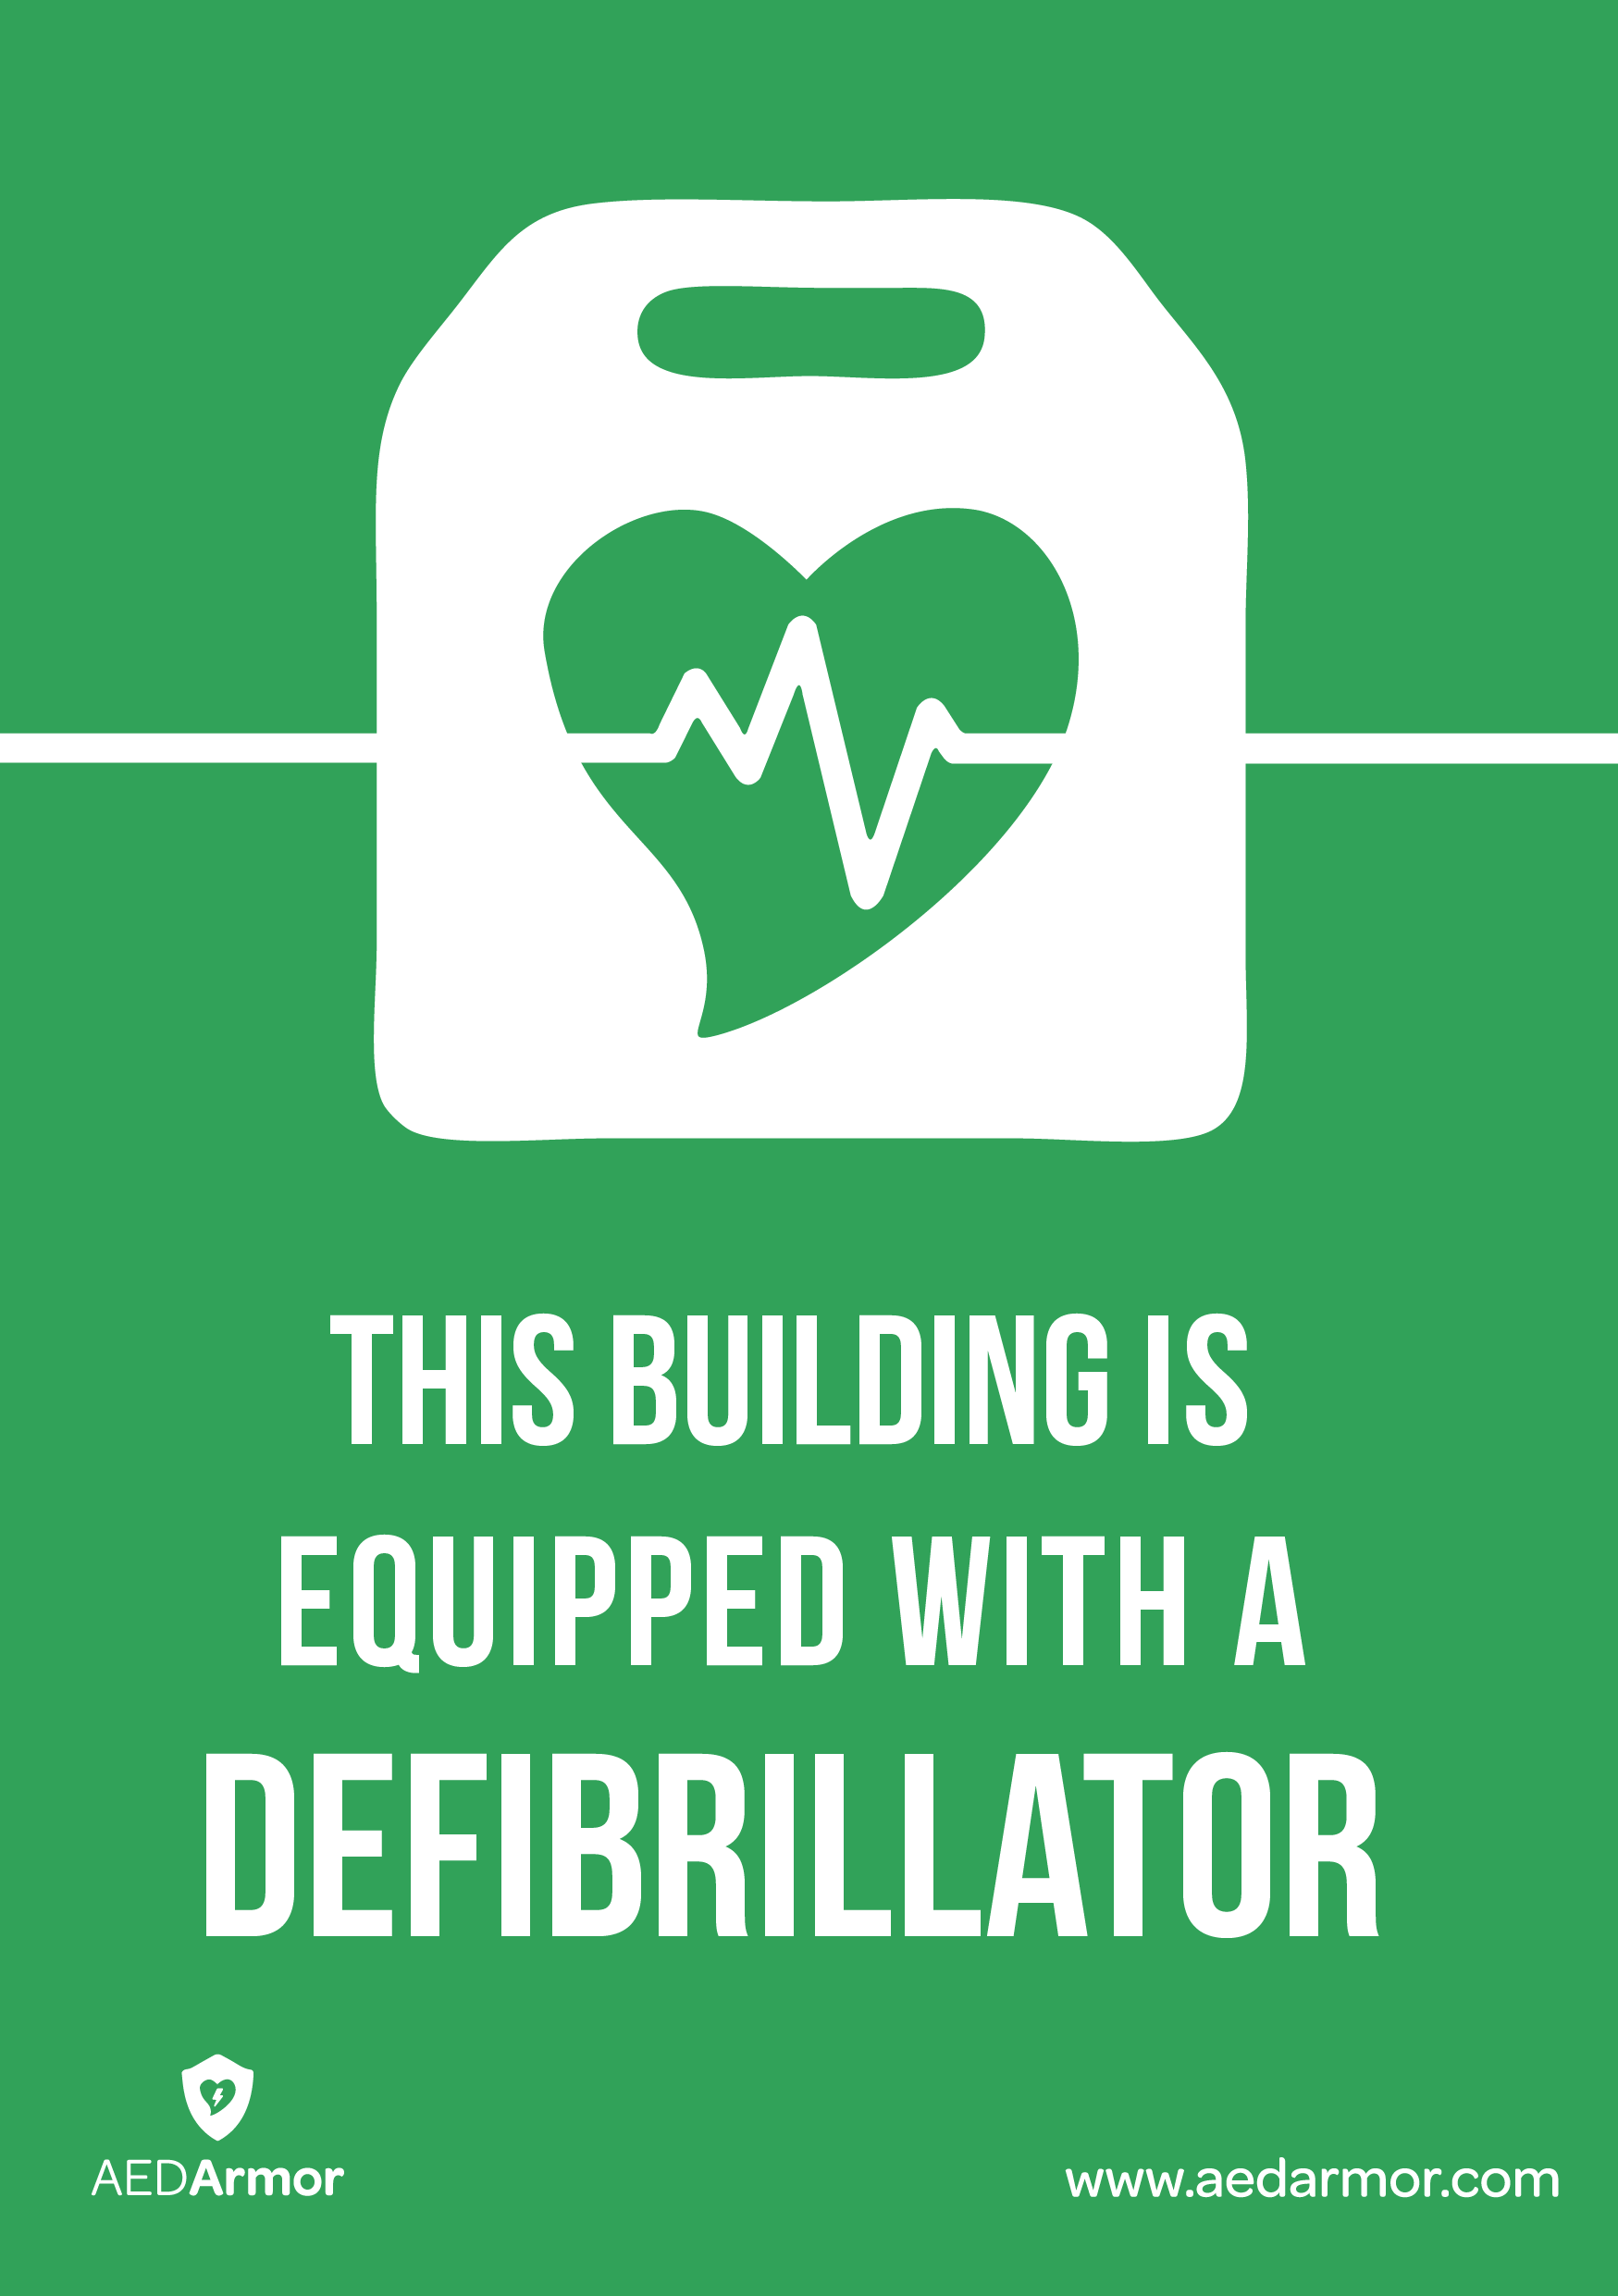 'This building is equipped with a defibrillator' A5 Sticker